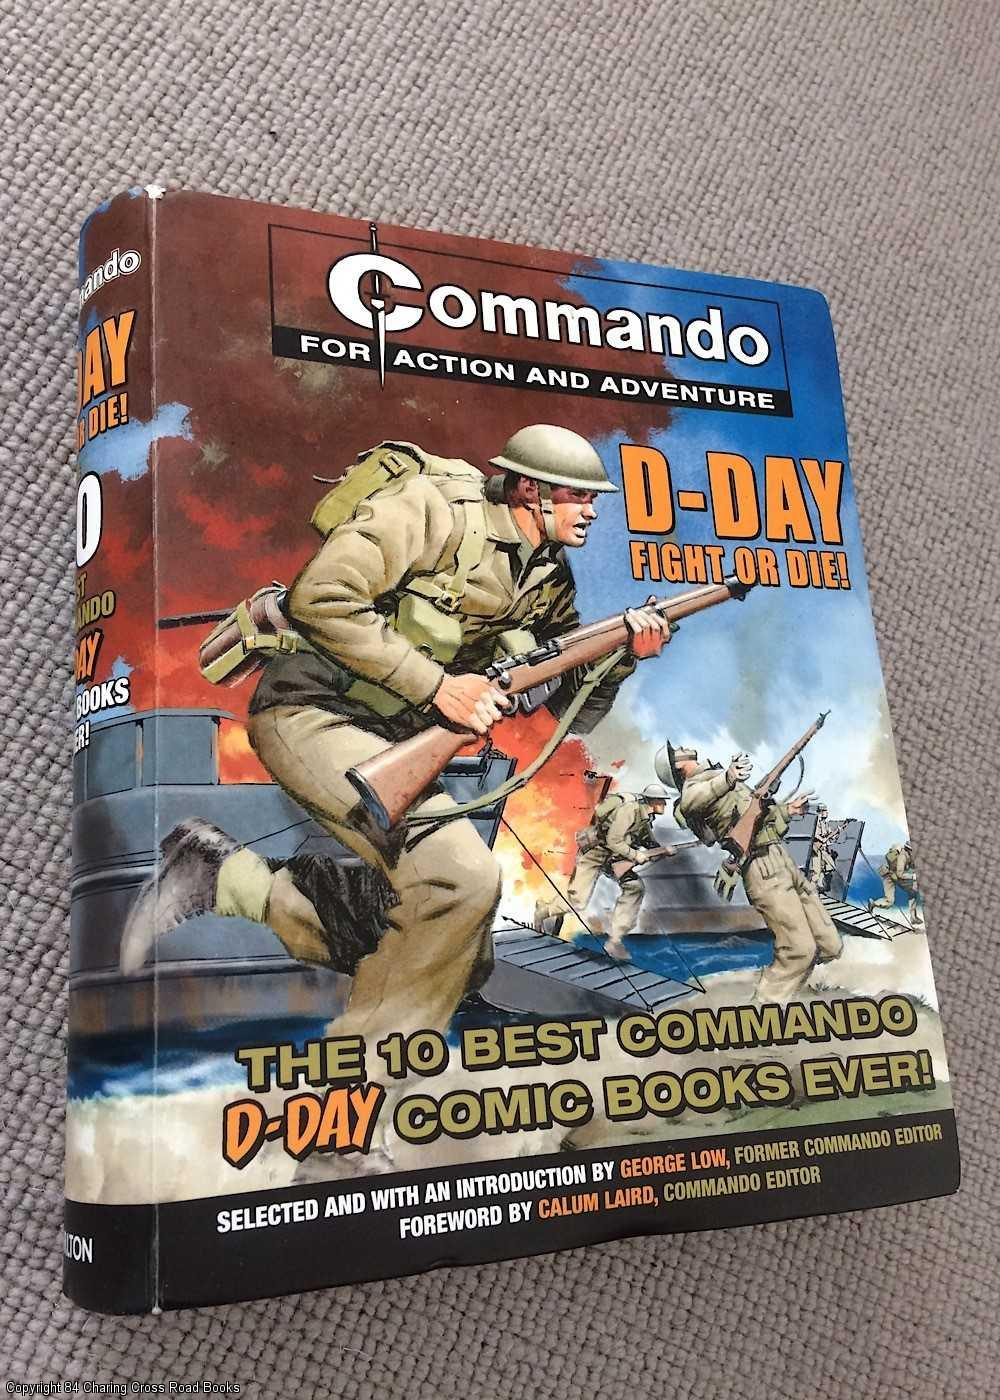 GEORGE LOW (EDITOR), CALUM LAIRD (EDITOR) - Commando: D-Day Fight or Die!: The Twelve Best D-day Comic Books Ever!